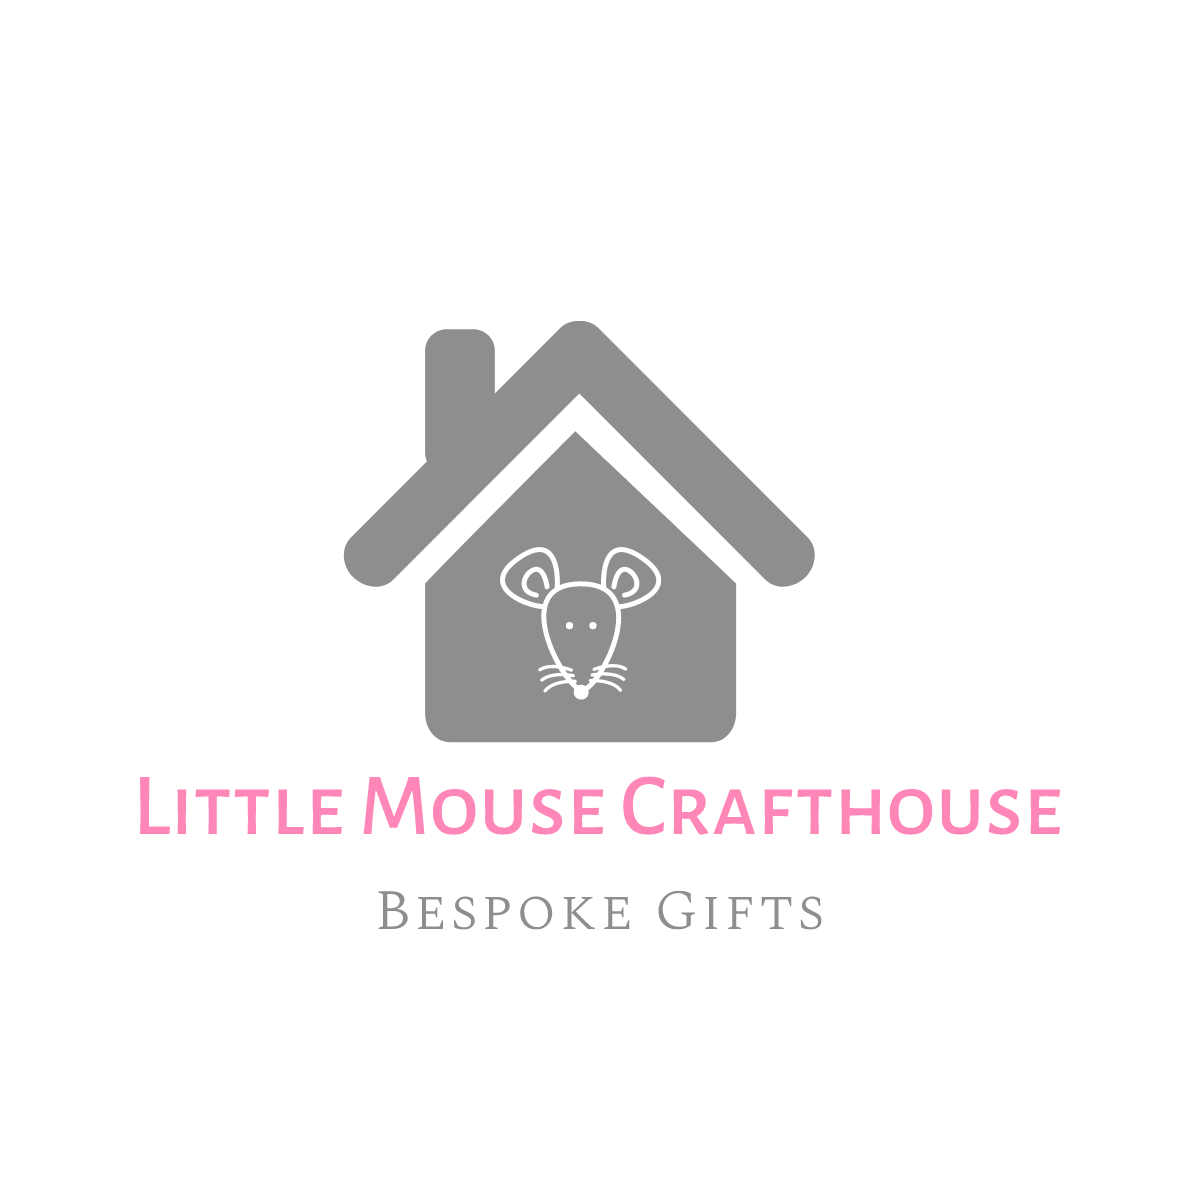 Little Mouse Crafthouse